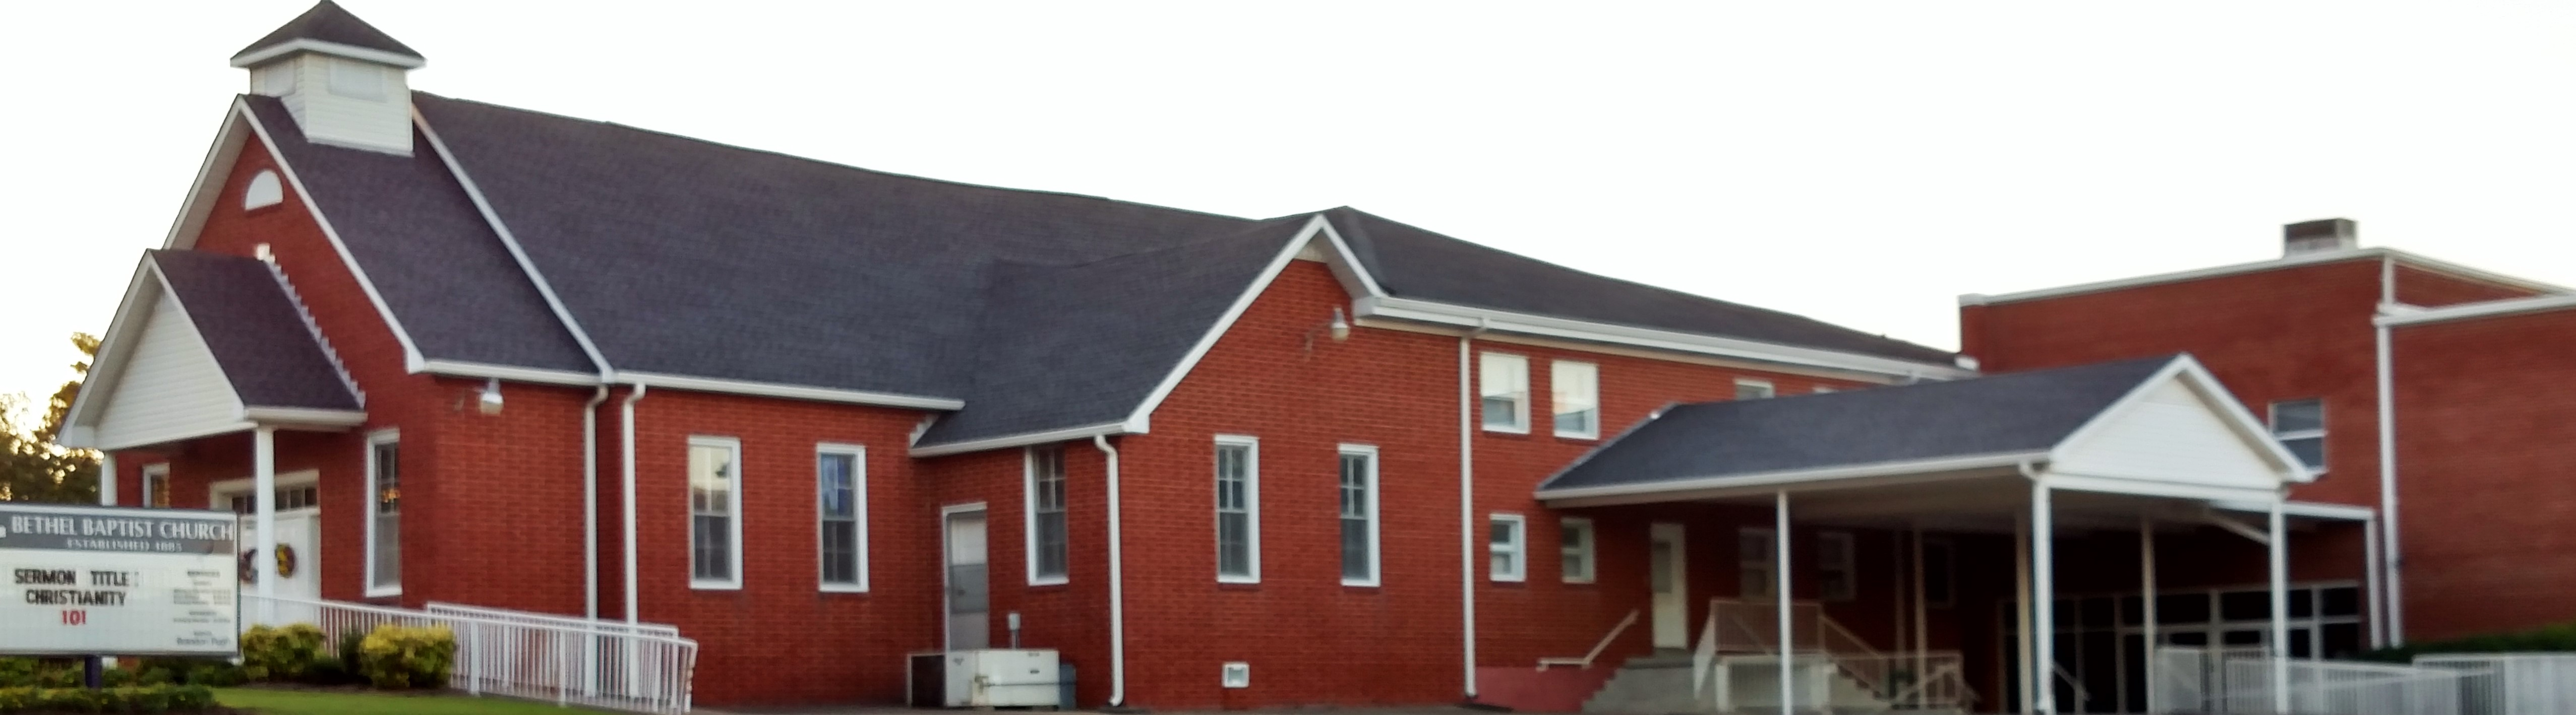 Bethel Baptist Church Page Banner Image